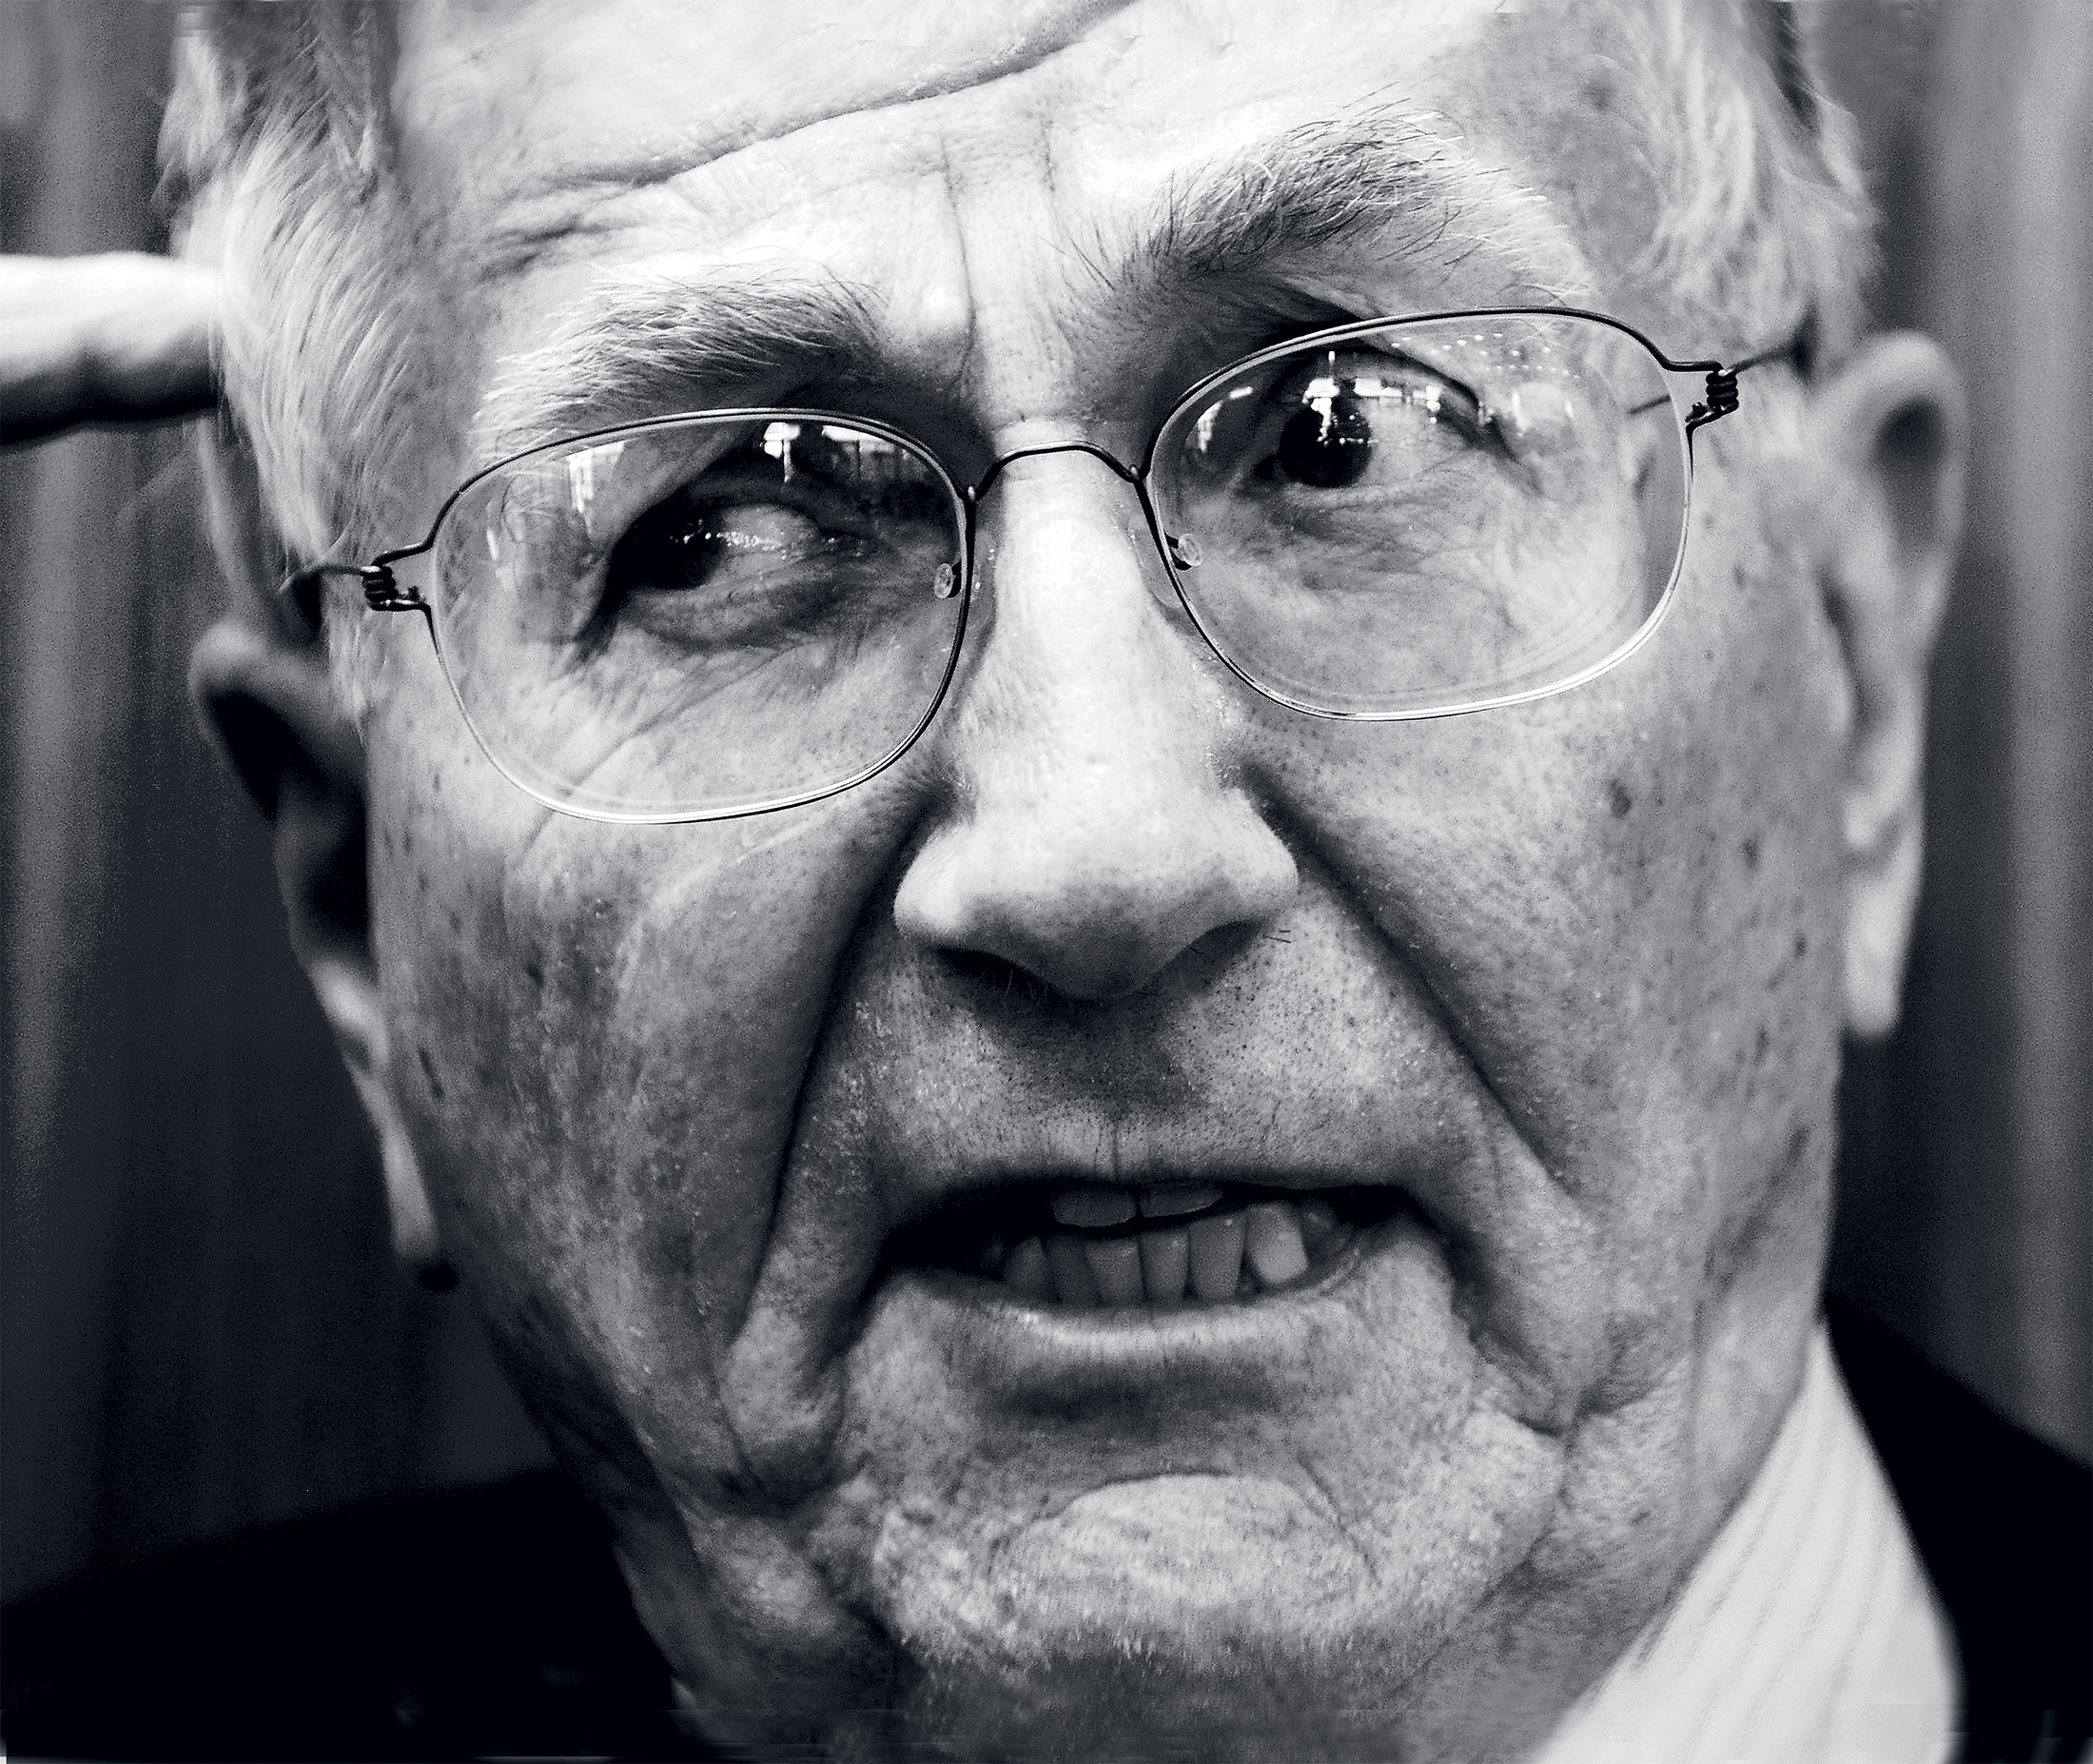 Sy Hersh, the man who uncovered the My Lai massacre and Abu Ghraib, has lately appeared on Alex Jones's Infowars and Kremlin-aligned RT.. Photograph by Alamy.